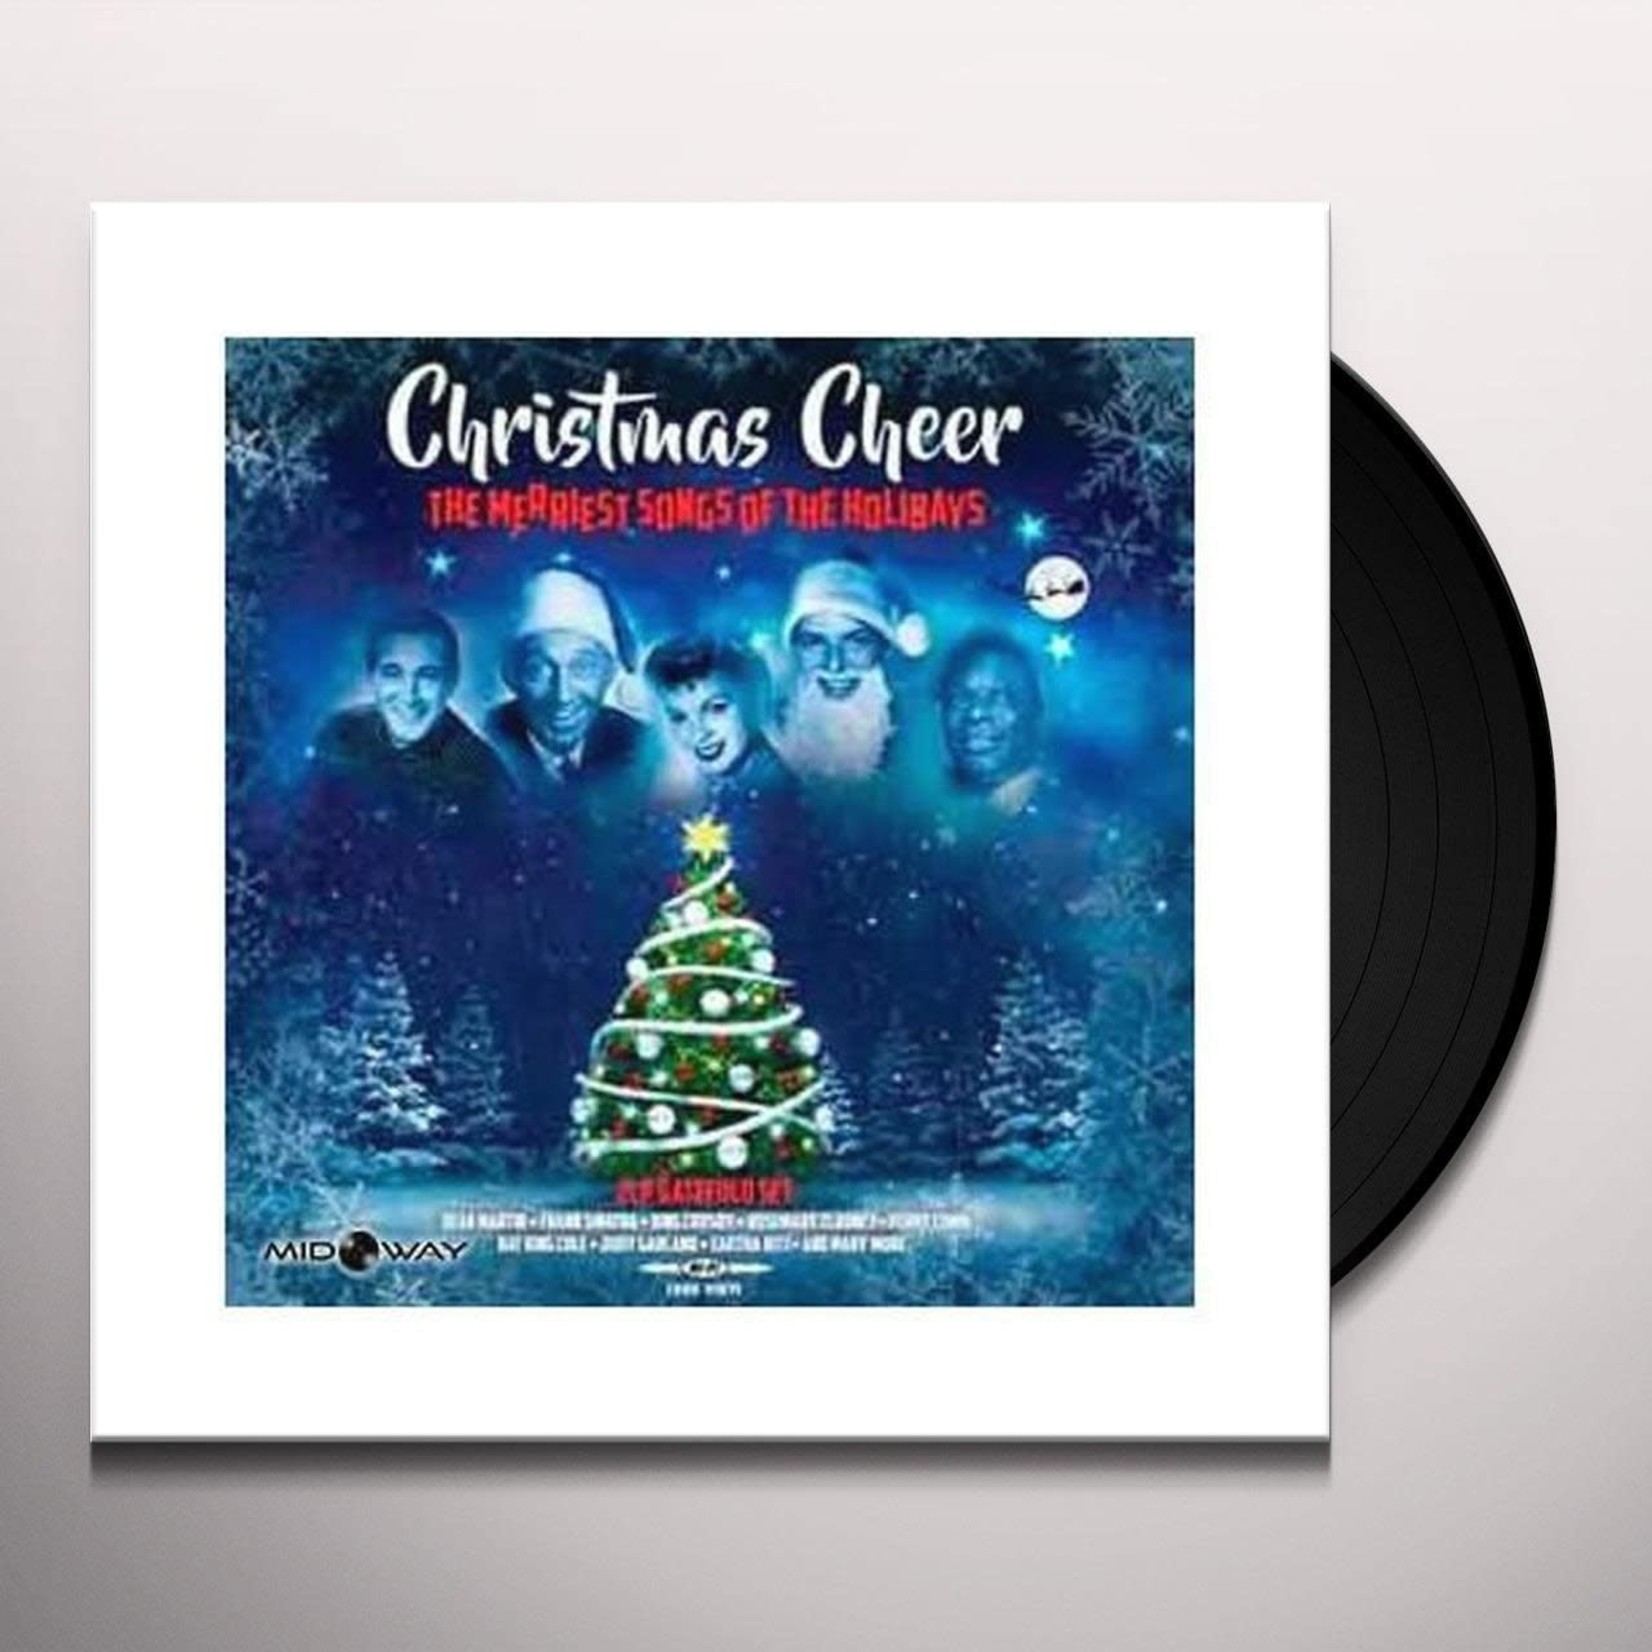 V/A - Christmas Cheer The Merriest songs of the holidays (VINYL)